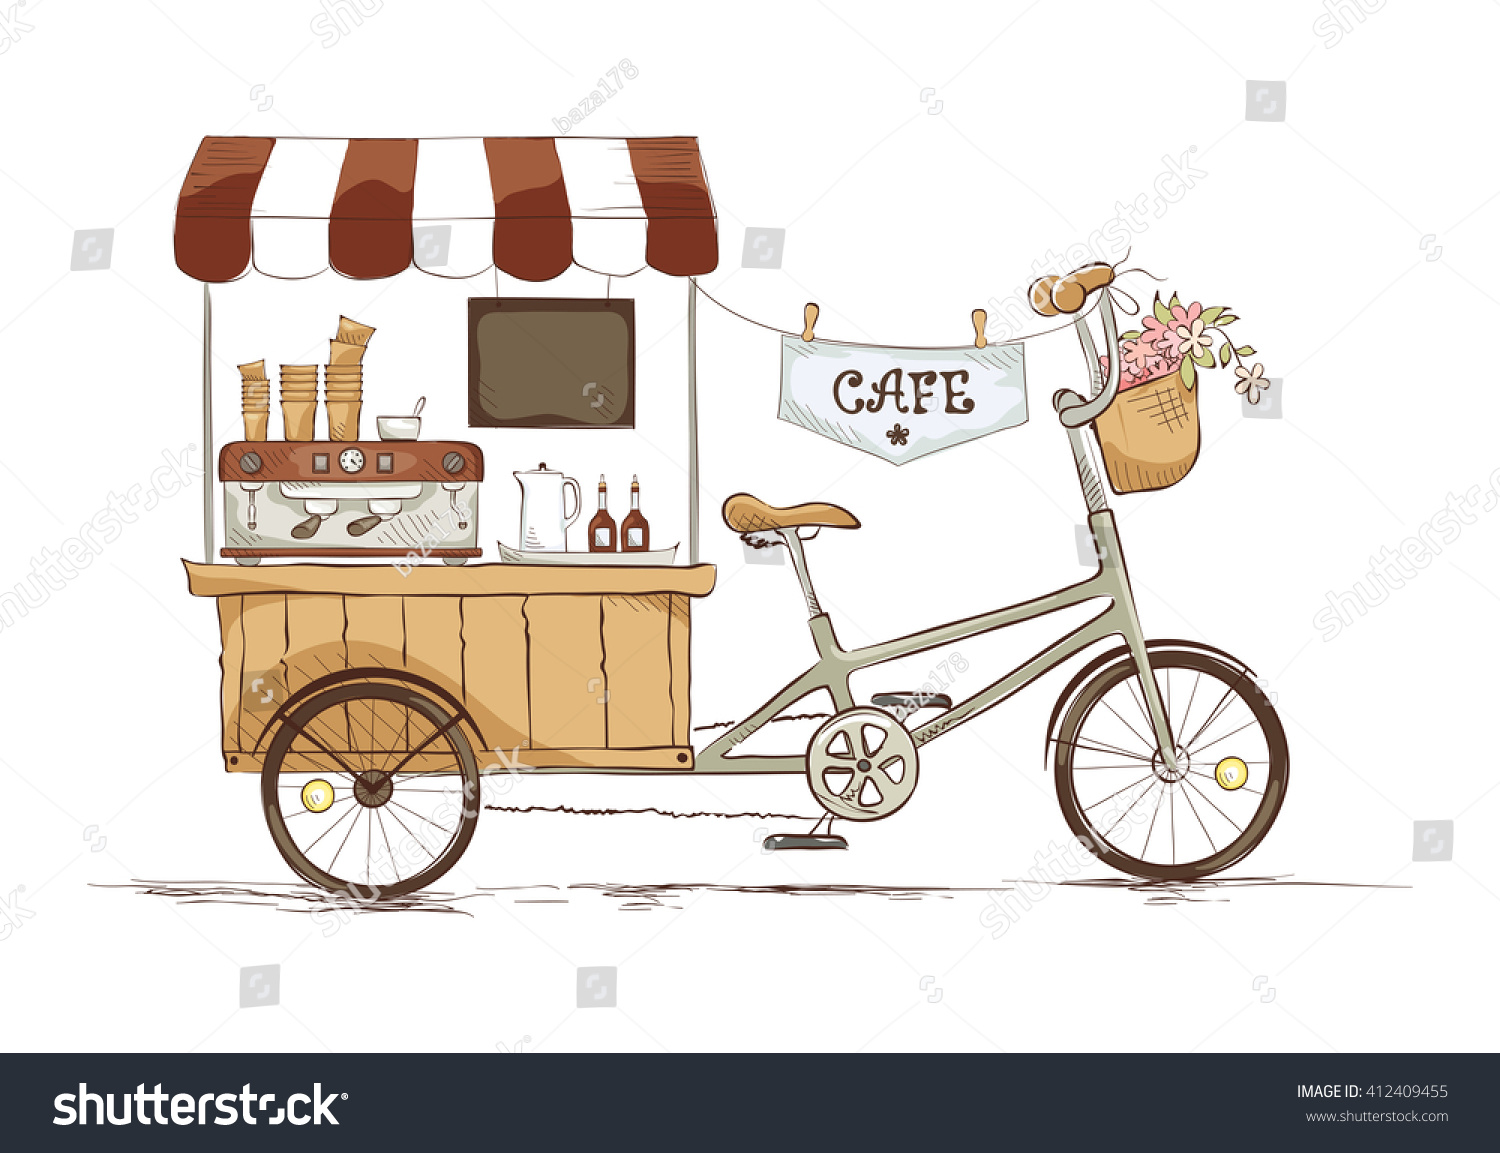 Coffee house on bicycle. Vector illustration on the theme of street food